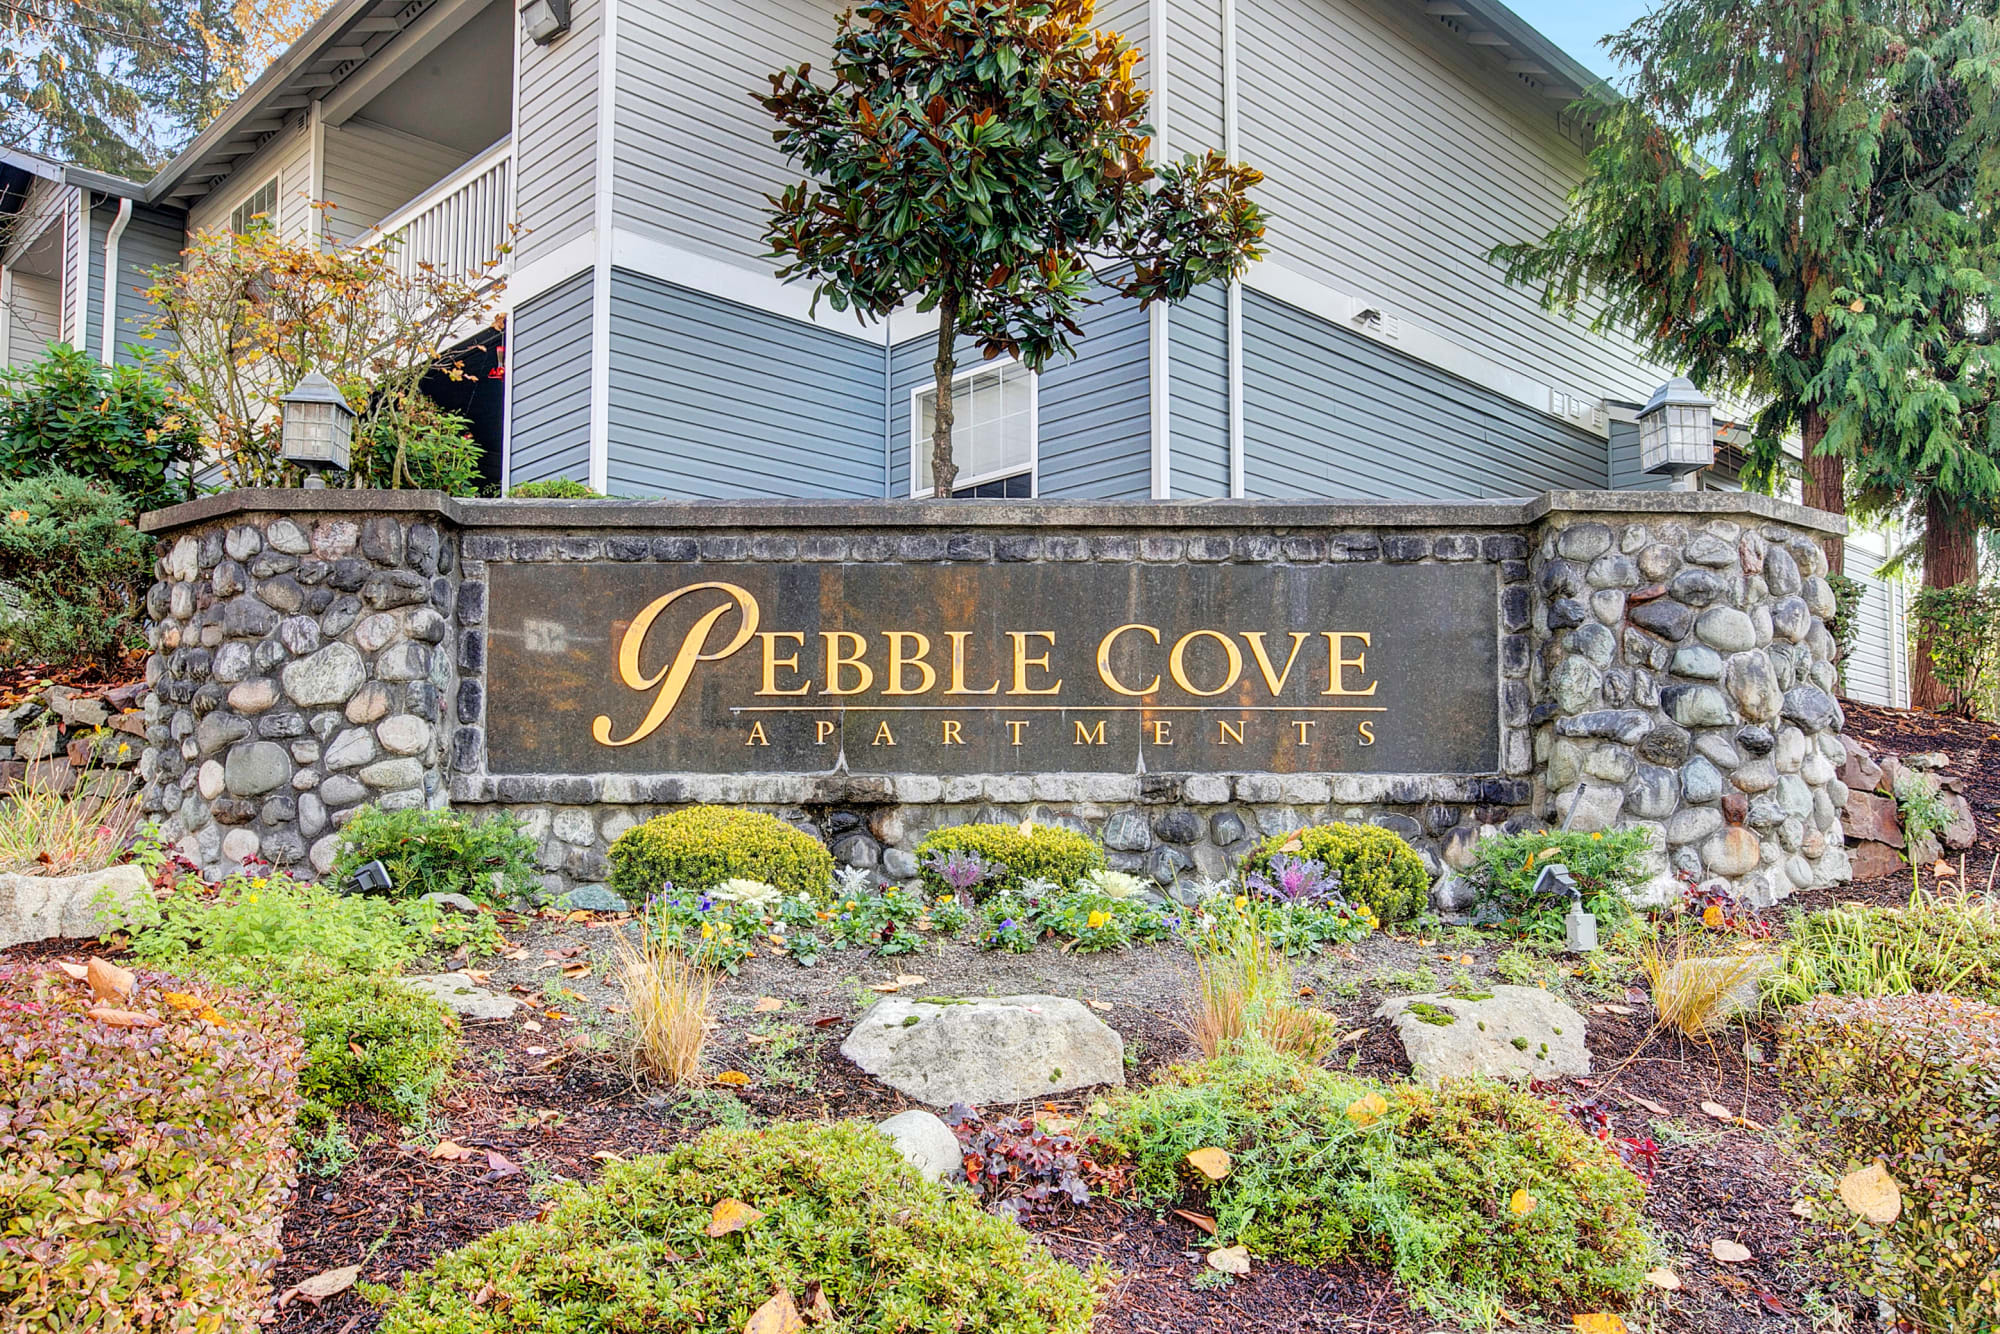 Monument Sign at Pebble Cove Apartments in Renton